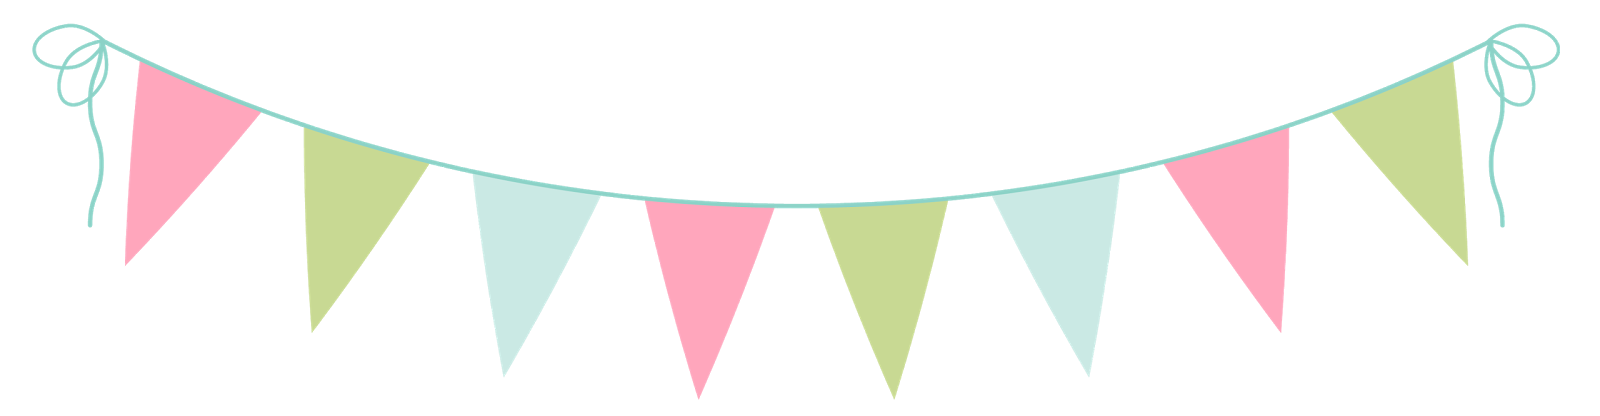 Party Bunting Clip Art - ClipArt Best